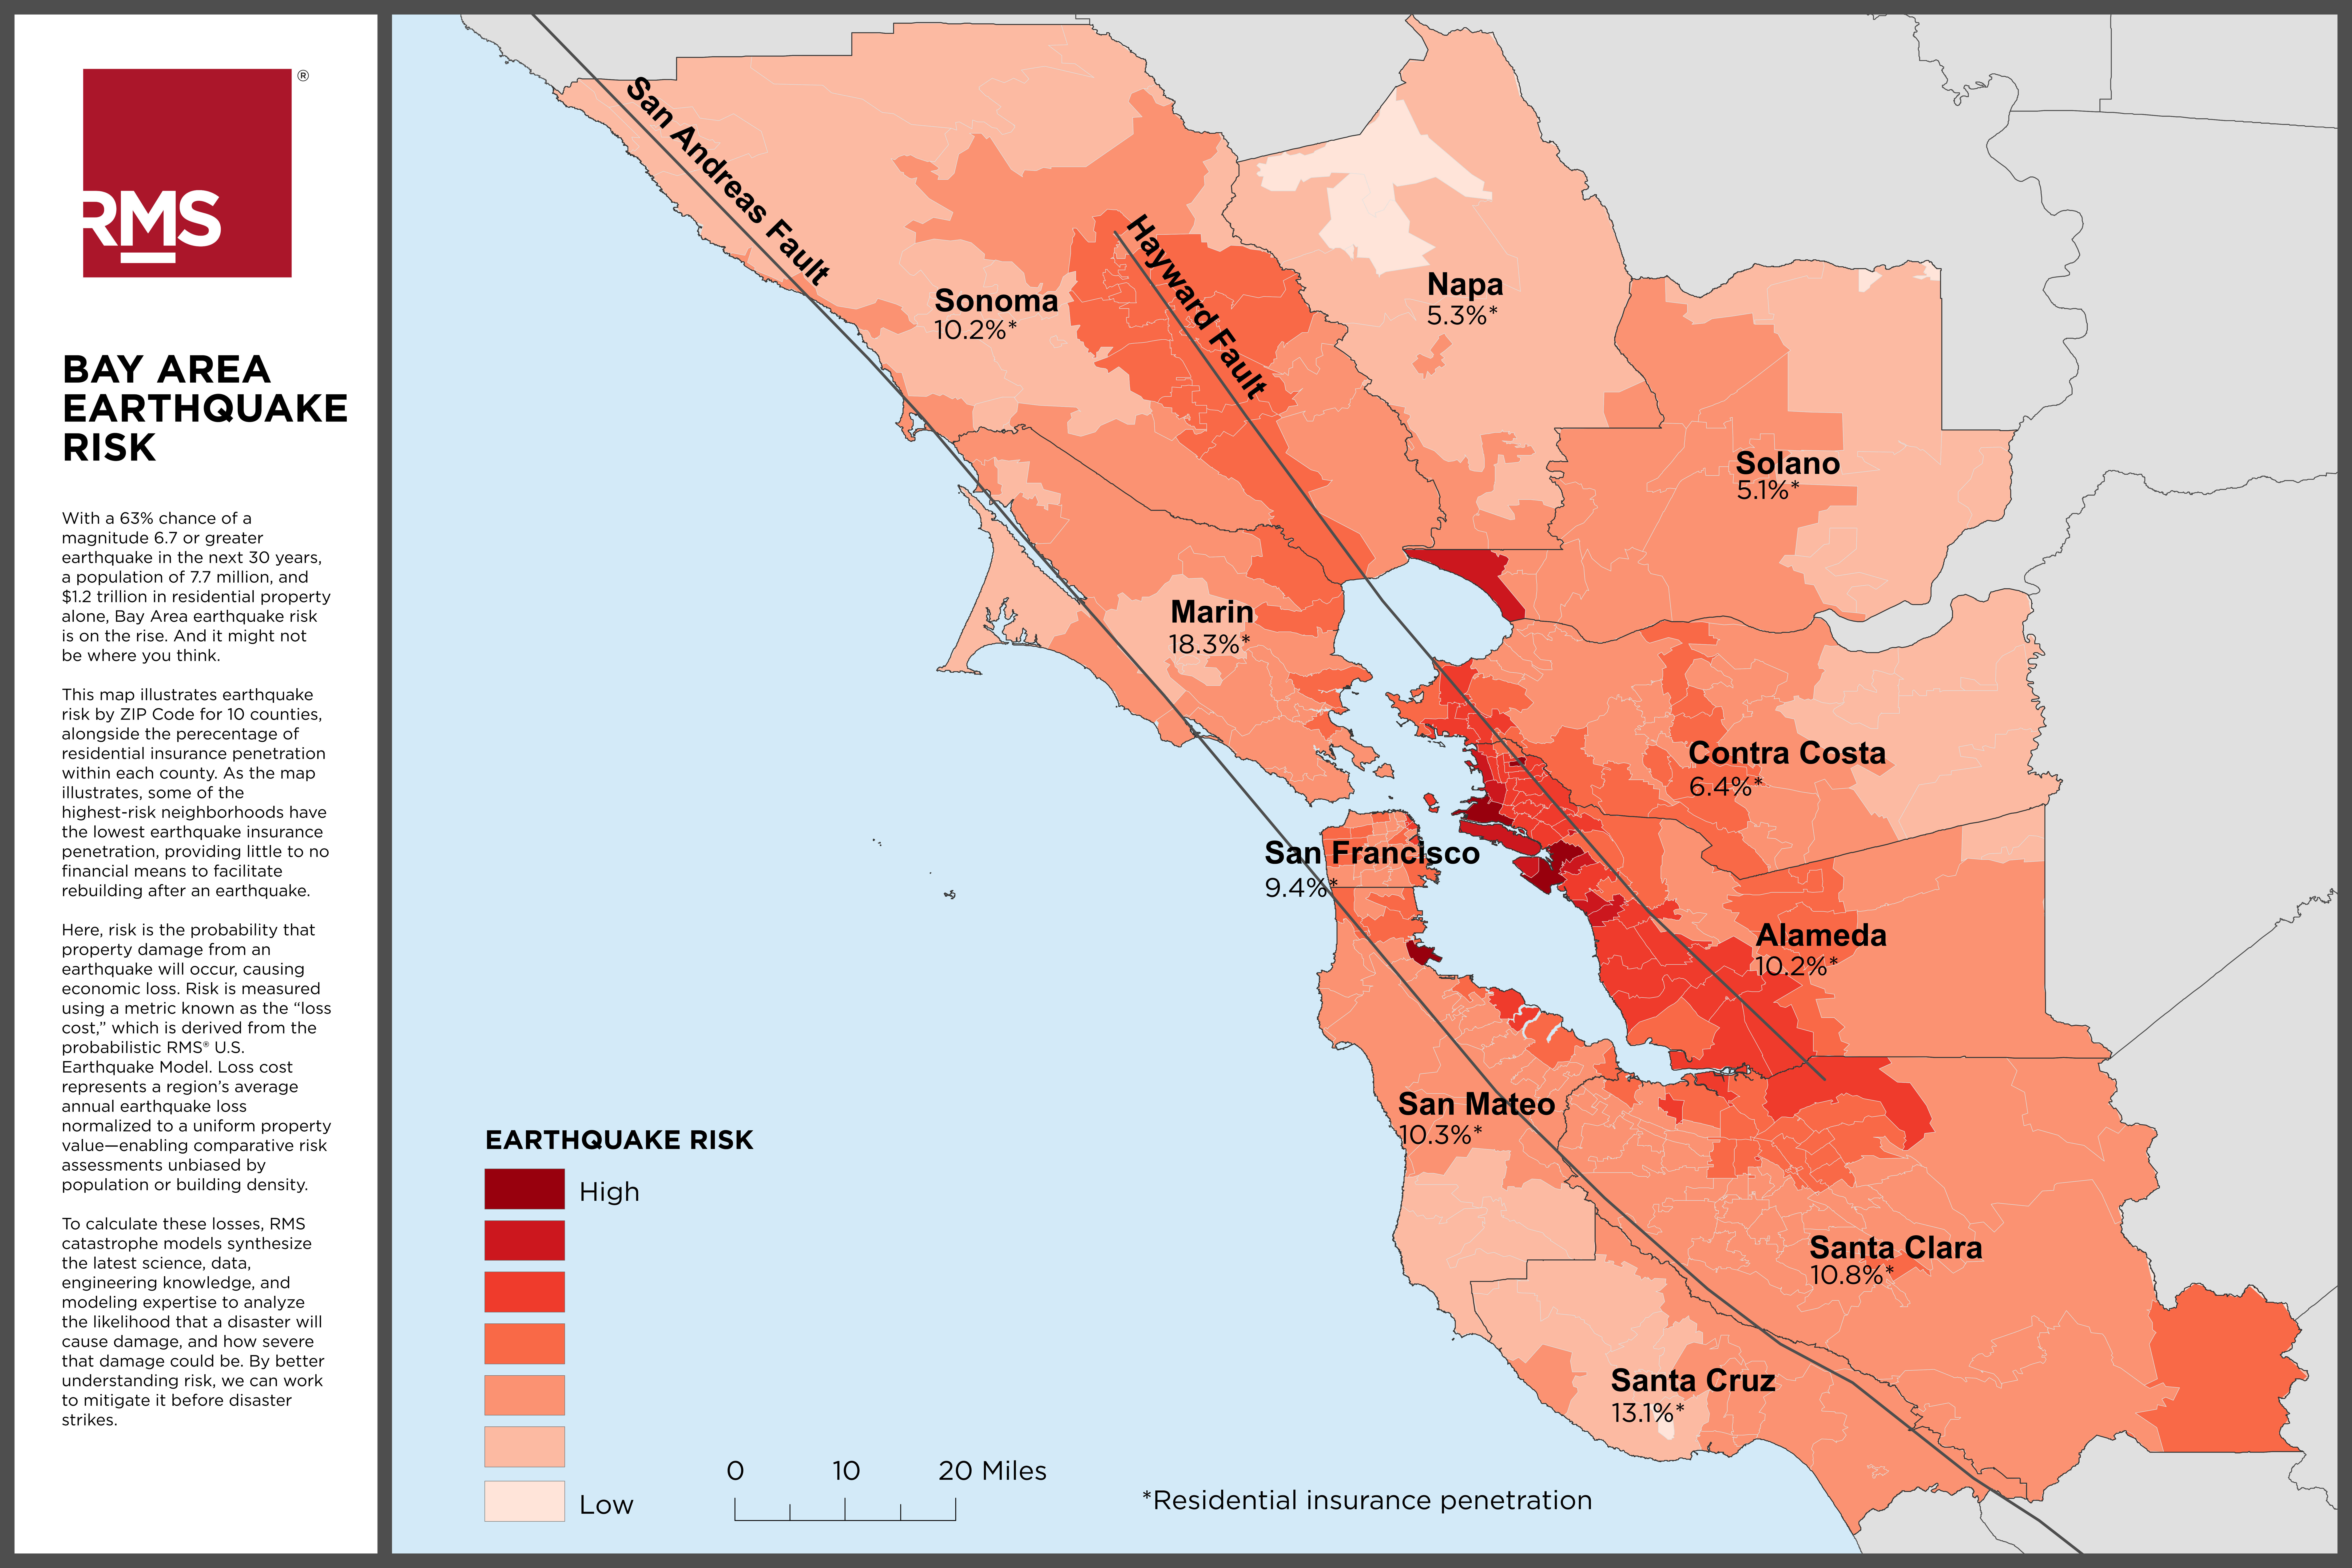 25 years after loma prieta san francisco bay area faces increased earthquake risk next big one could cause 200 billion in losses business wire